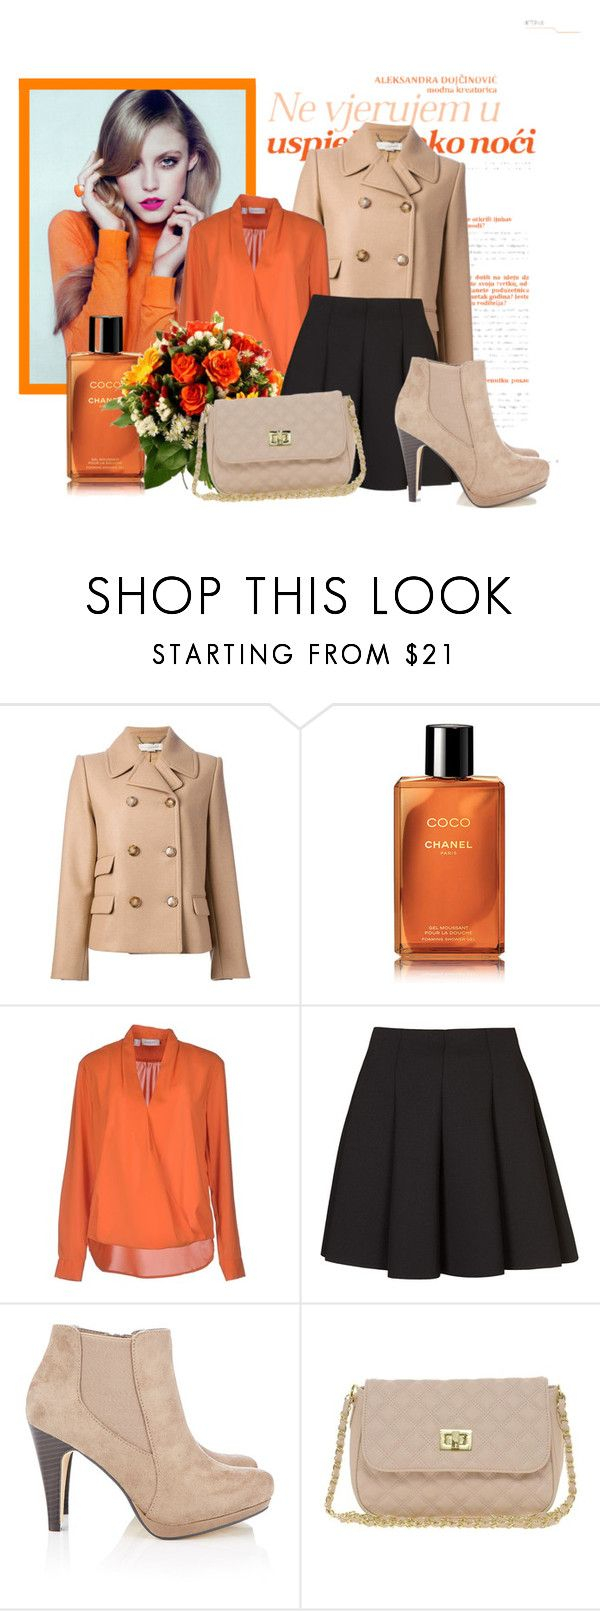 """Be Bold in Orange"" by alex-begg ❤ liked on Polyvore featuring Retrò, STELLA McCARTNEY, Chanel, Zanetti 1965, Topshop, Wallis and ASOS"